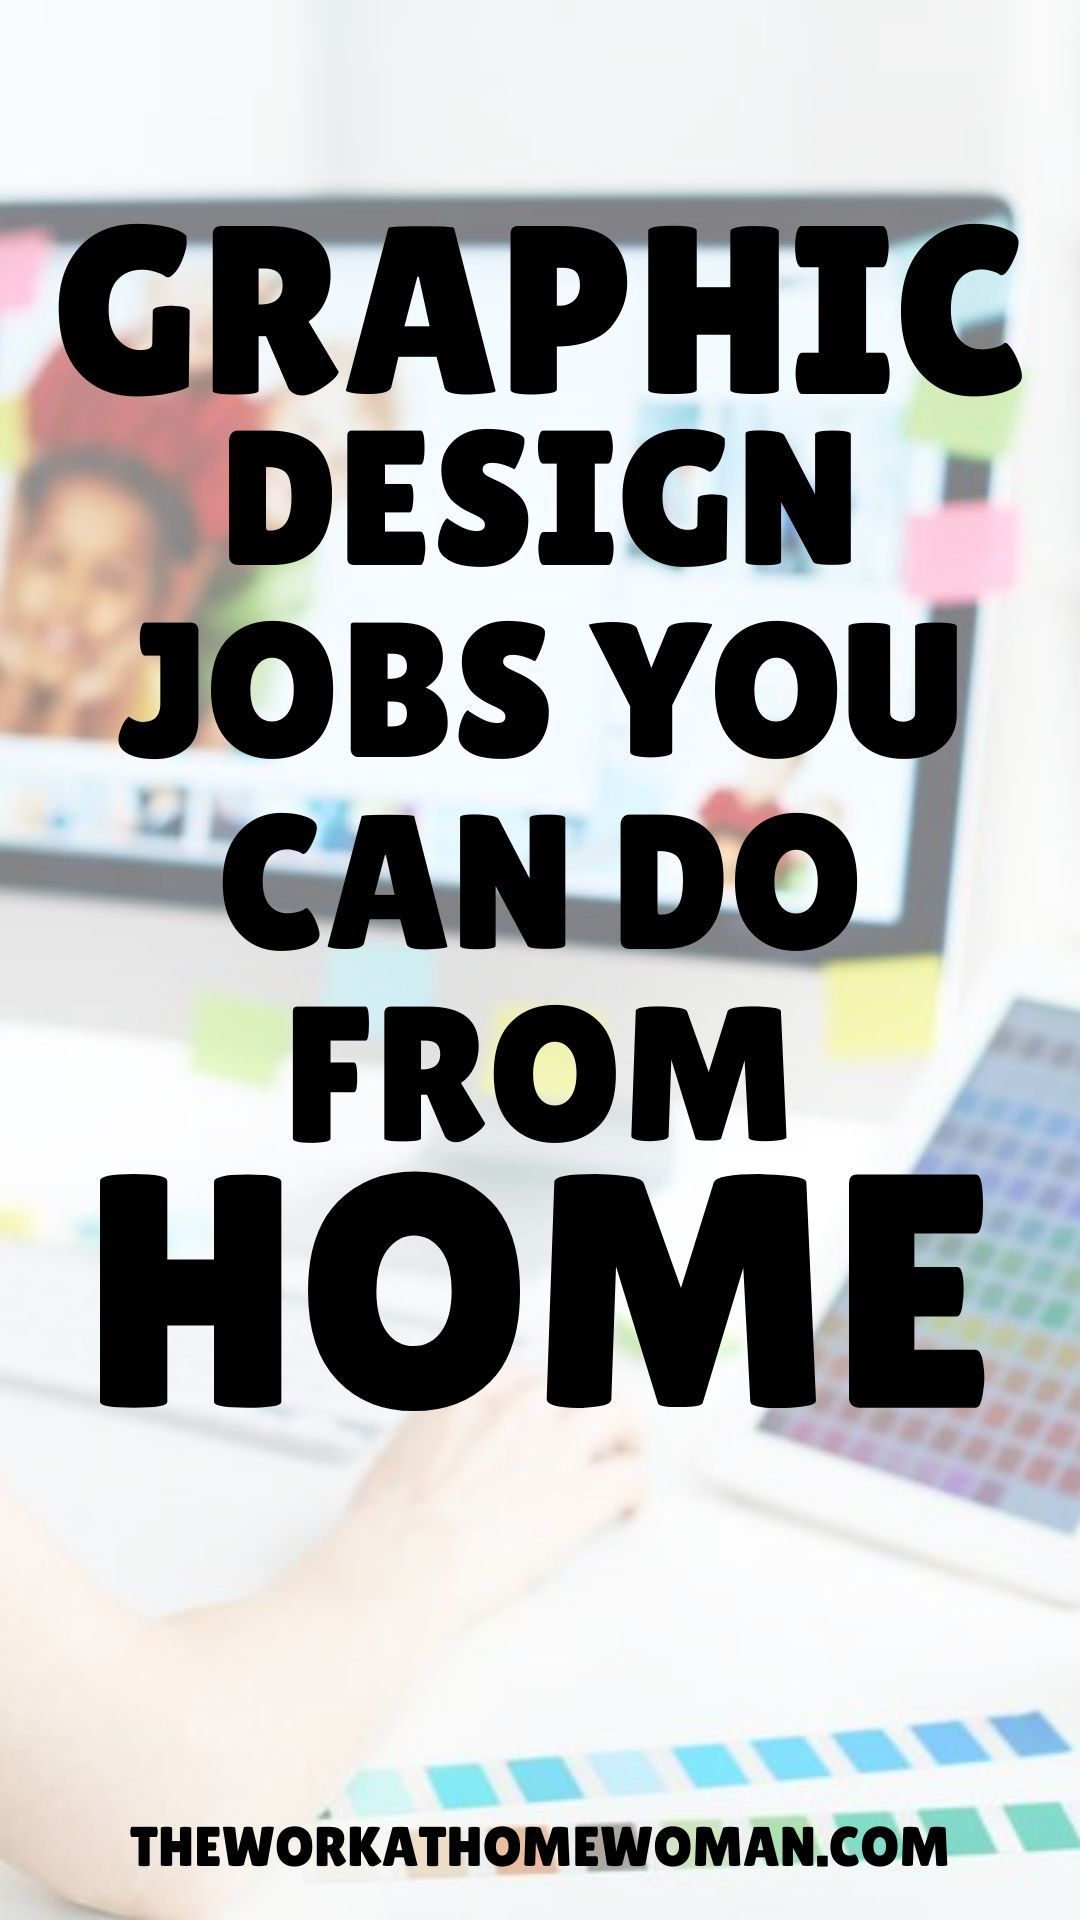 How To Work From Home As A Graphic Designer In 2020 Working From Home Graphic Design Jobs Graphic Design